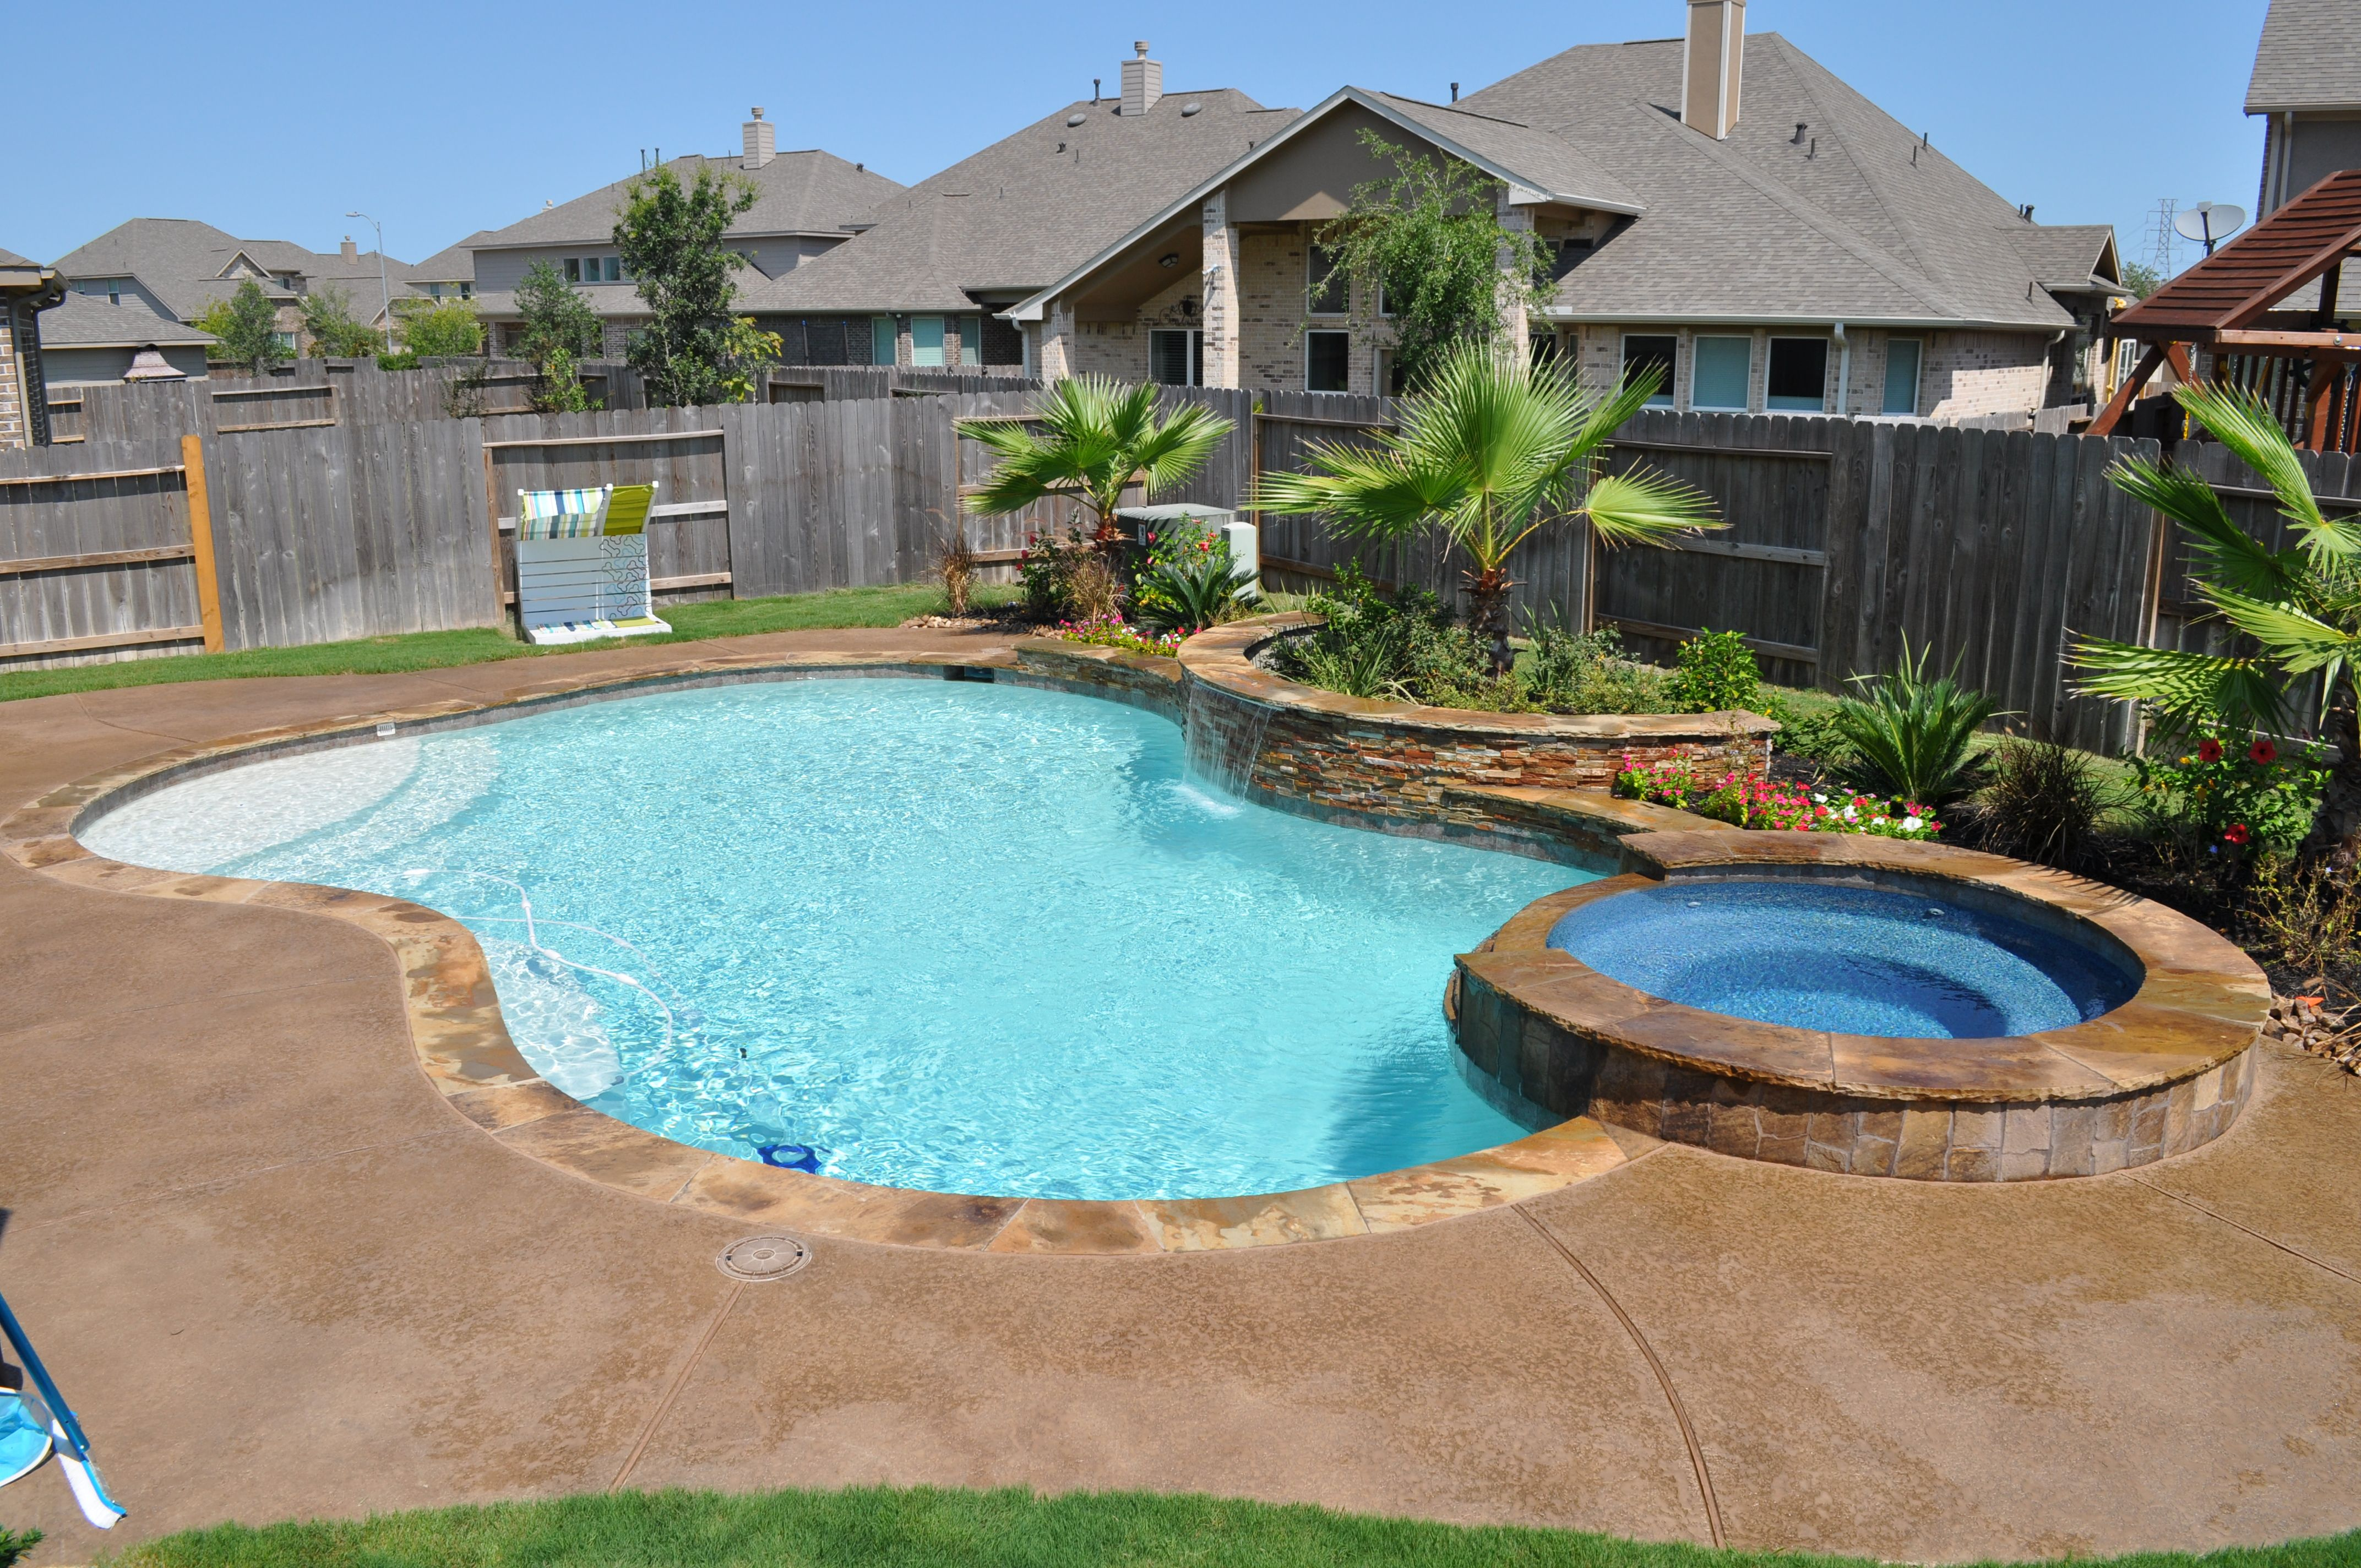 Free Form Swimming Pool And Spa In Katy Tx Houston Tx Features Raised Spa Tiered Flagstone